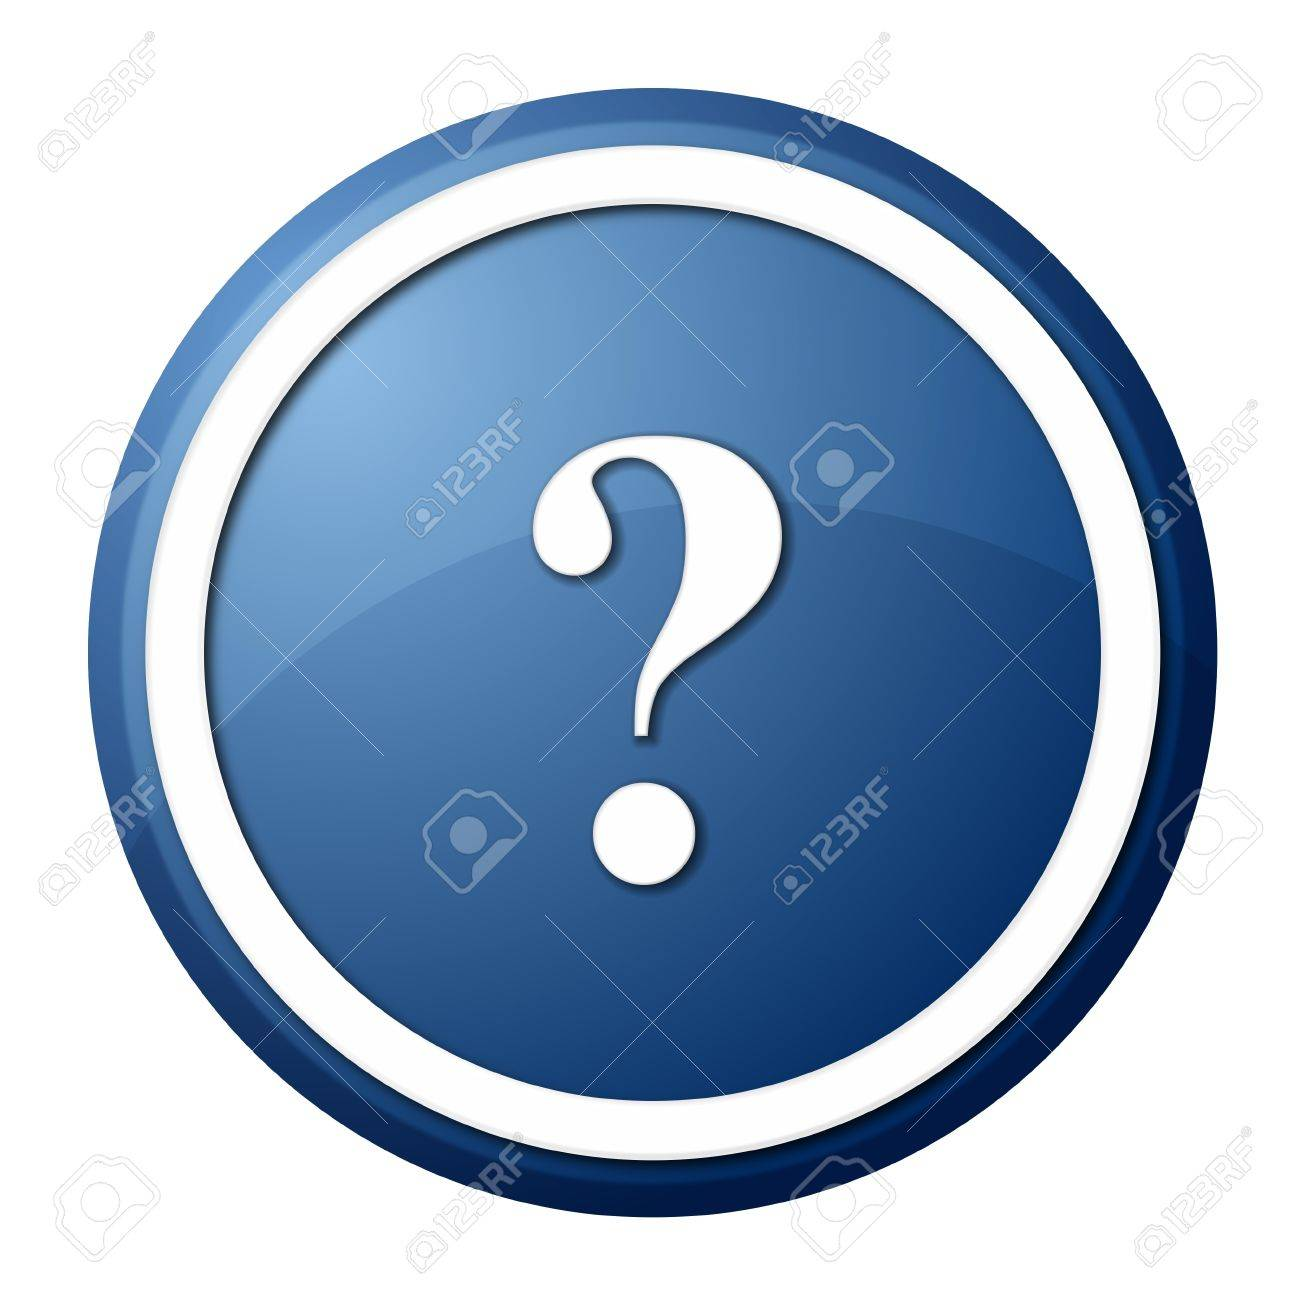 round question mark button with white ring for web design and presentation Stock Photo - 8257665